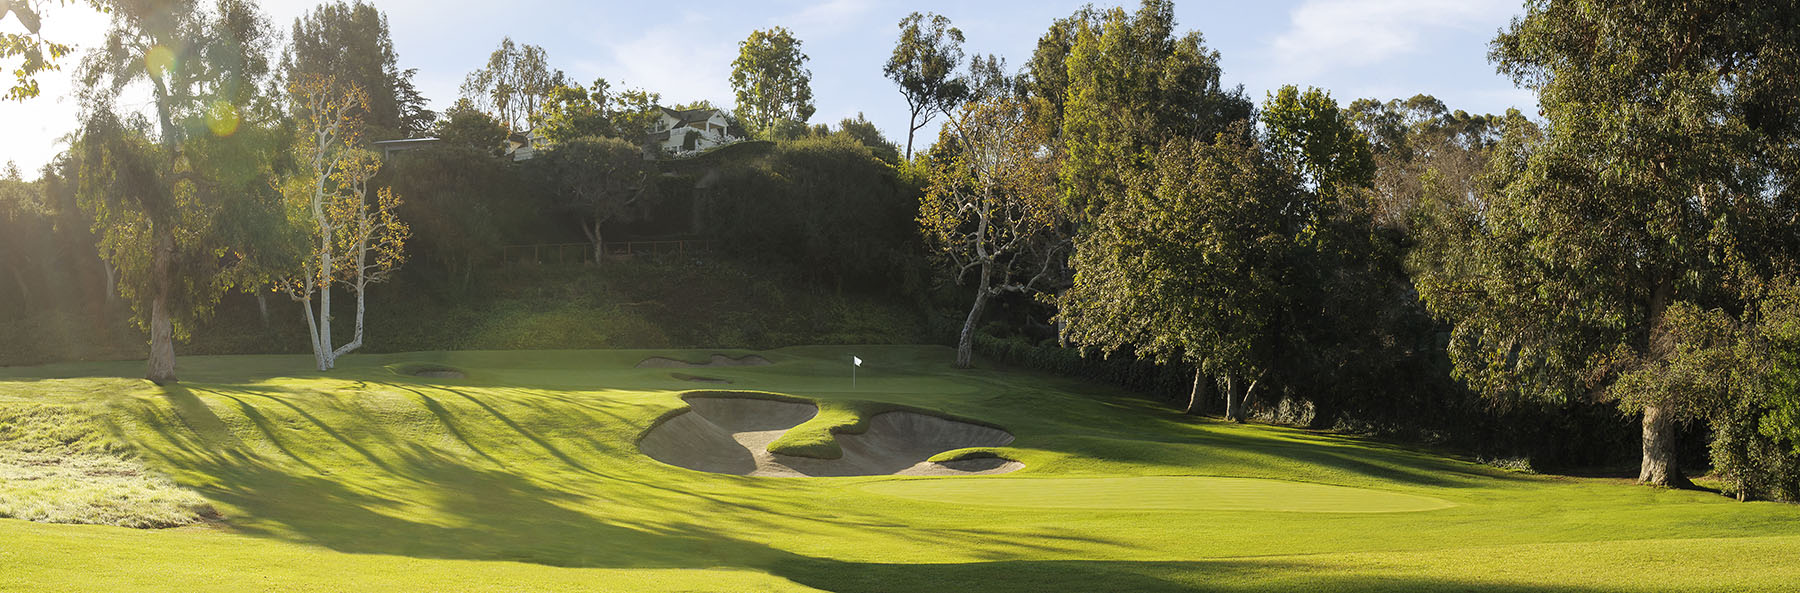 Golf Course Image - Riviera Country Club No. 6